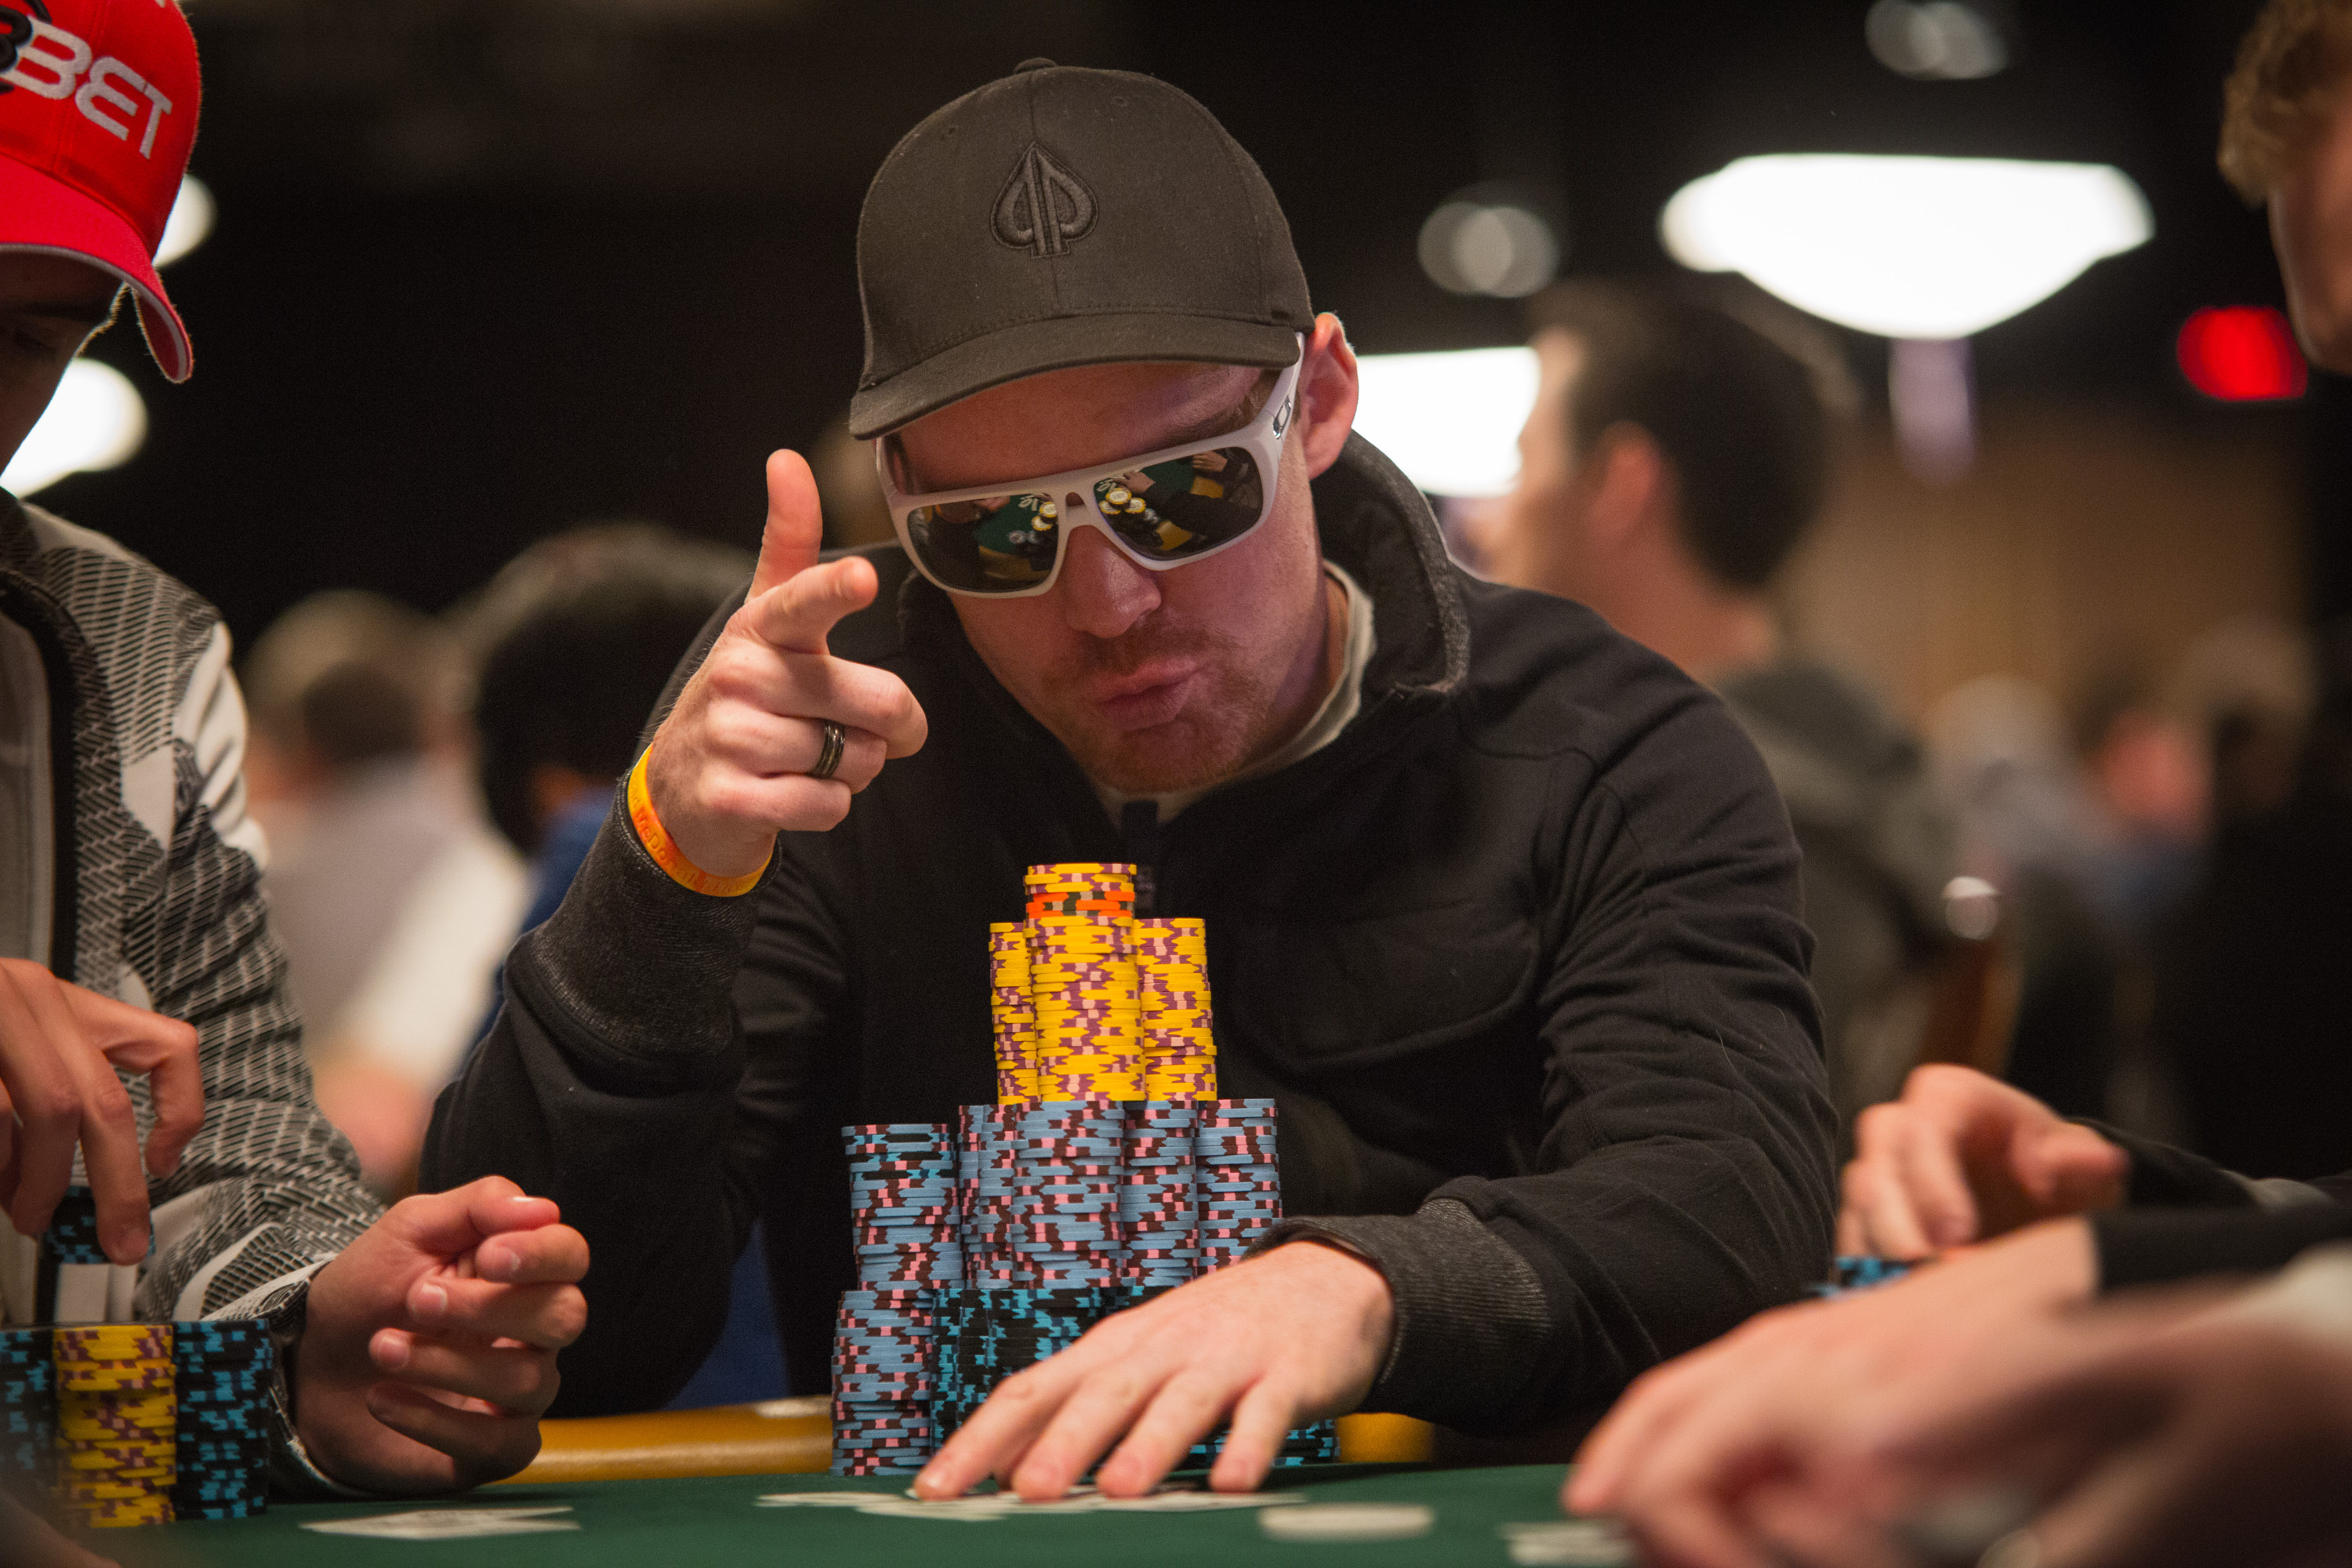 """""""Let Others Go Nuts"""": Matt Jarvis Offers 6-Max No-Limit Hold'em Tourney Advice"""